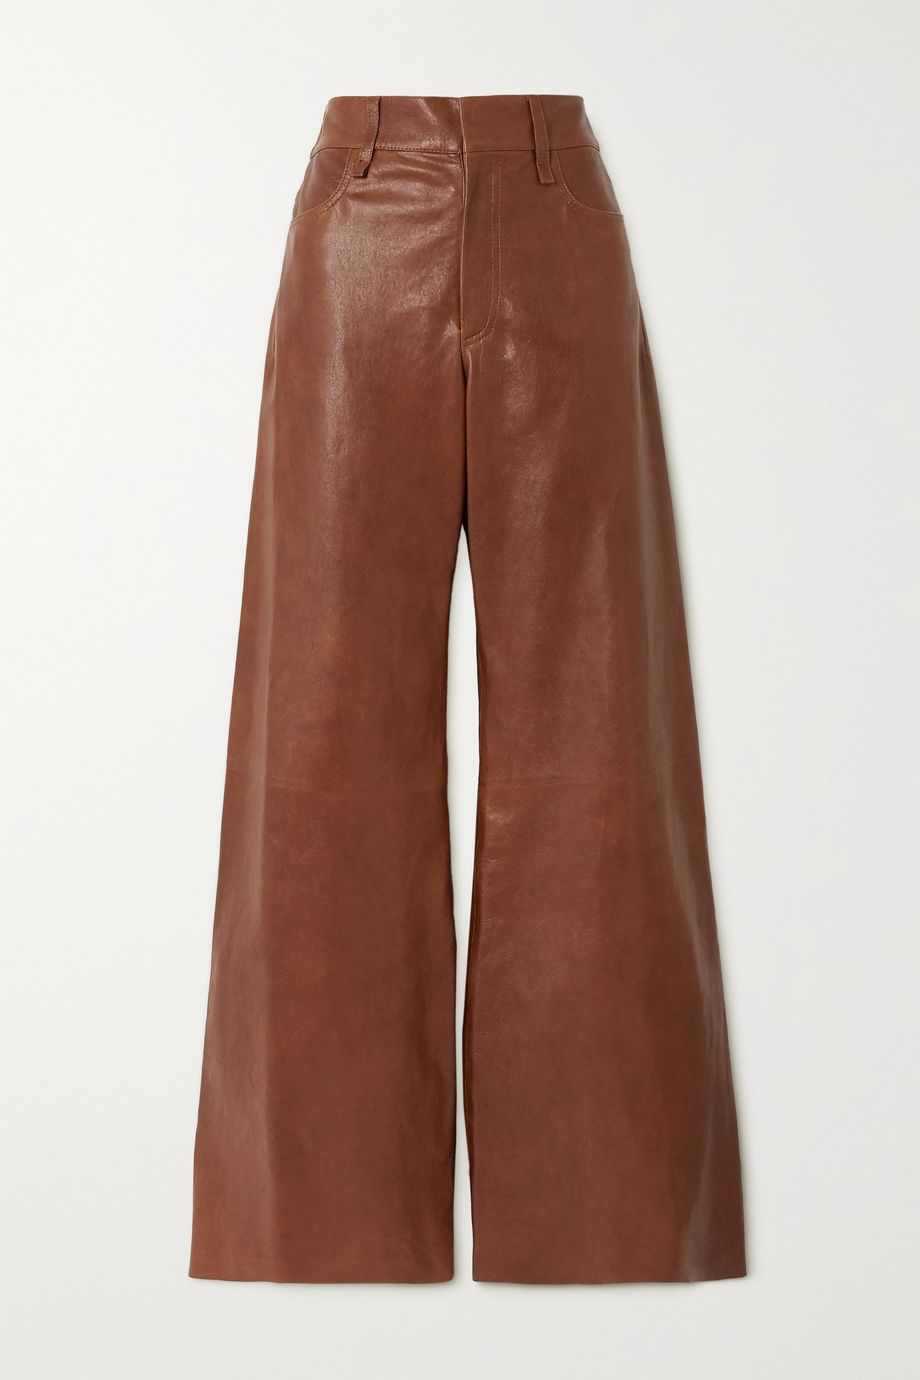 Chloé Leather flared pants